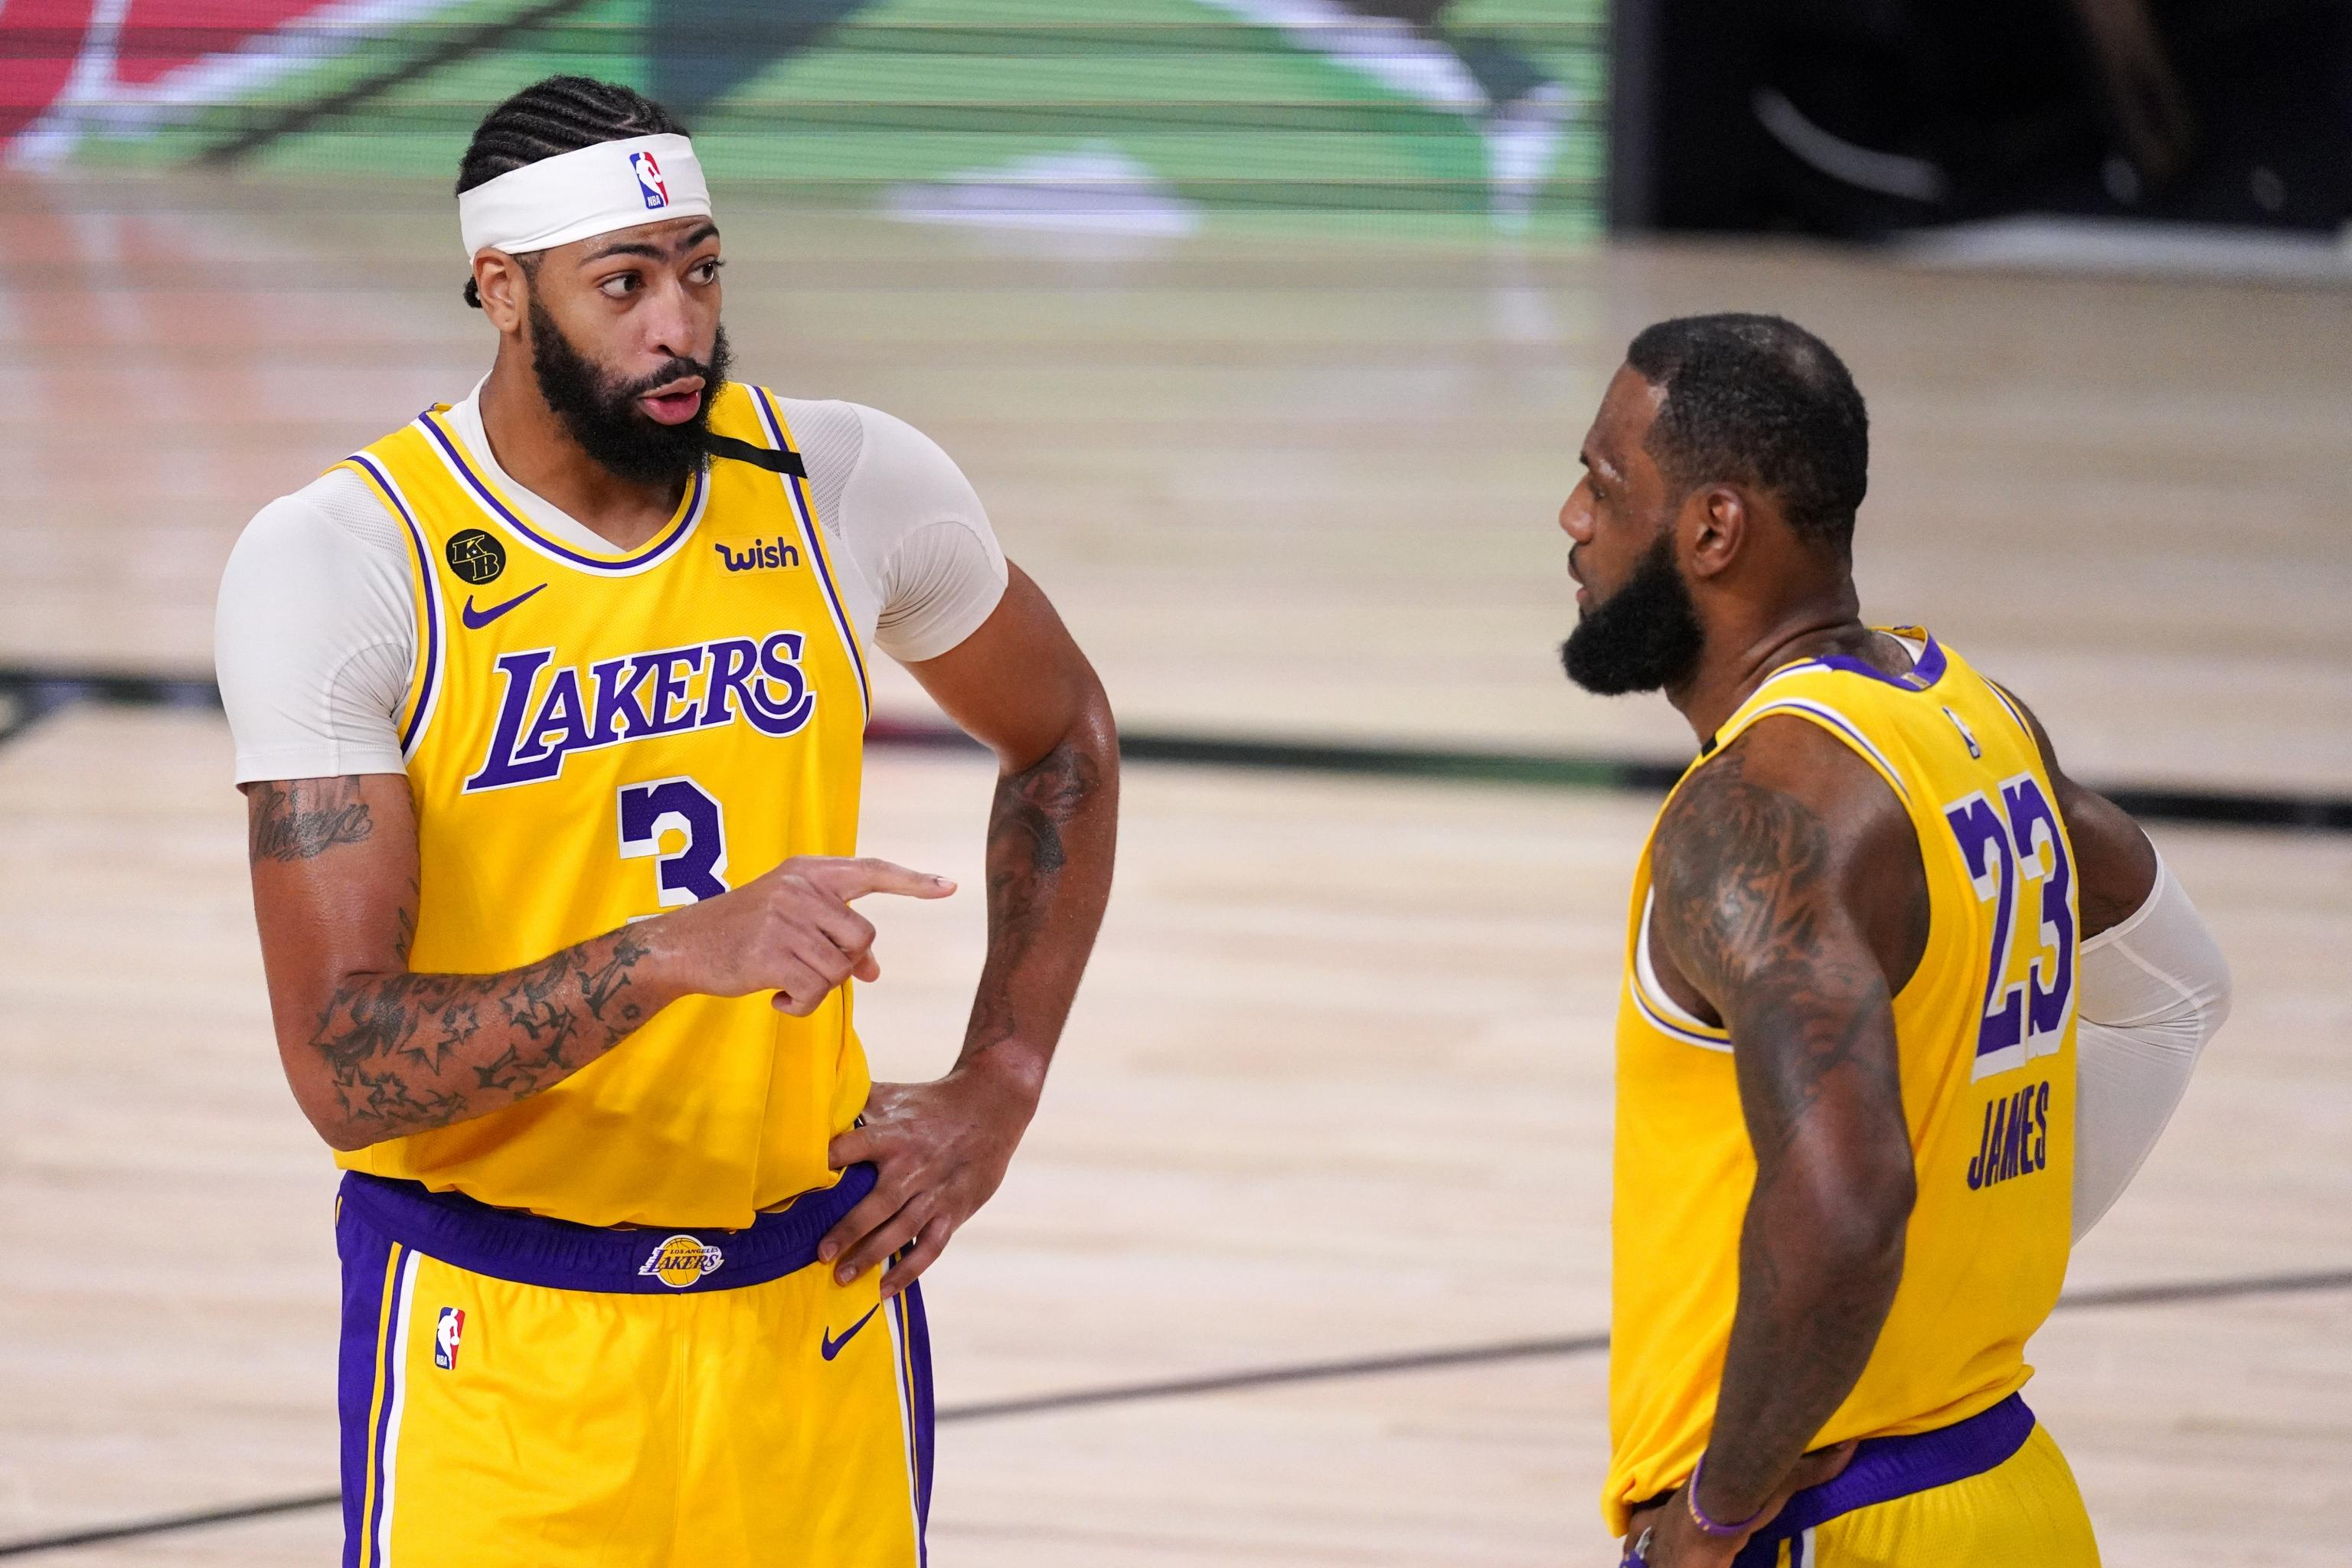 Nba Finals 2020 Game 1 Tv Schedule Odds Heat Vs Lakers Prediction Bleacher Report Latest News Videos And Highlights